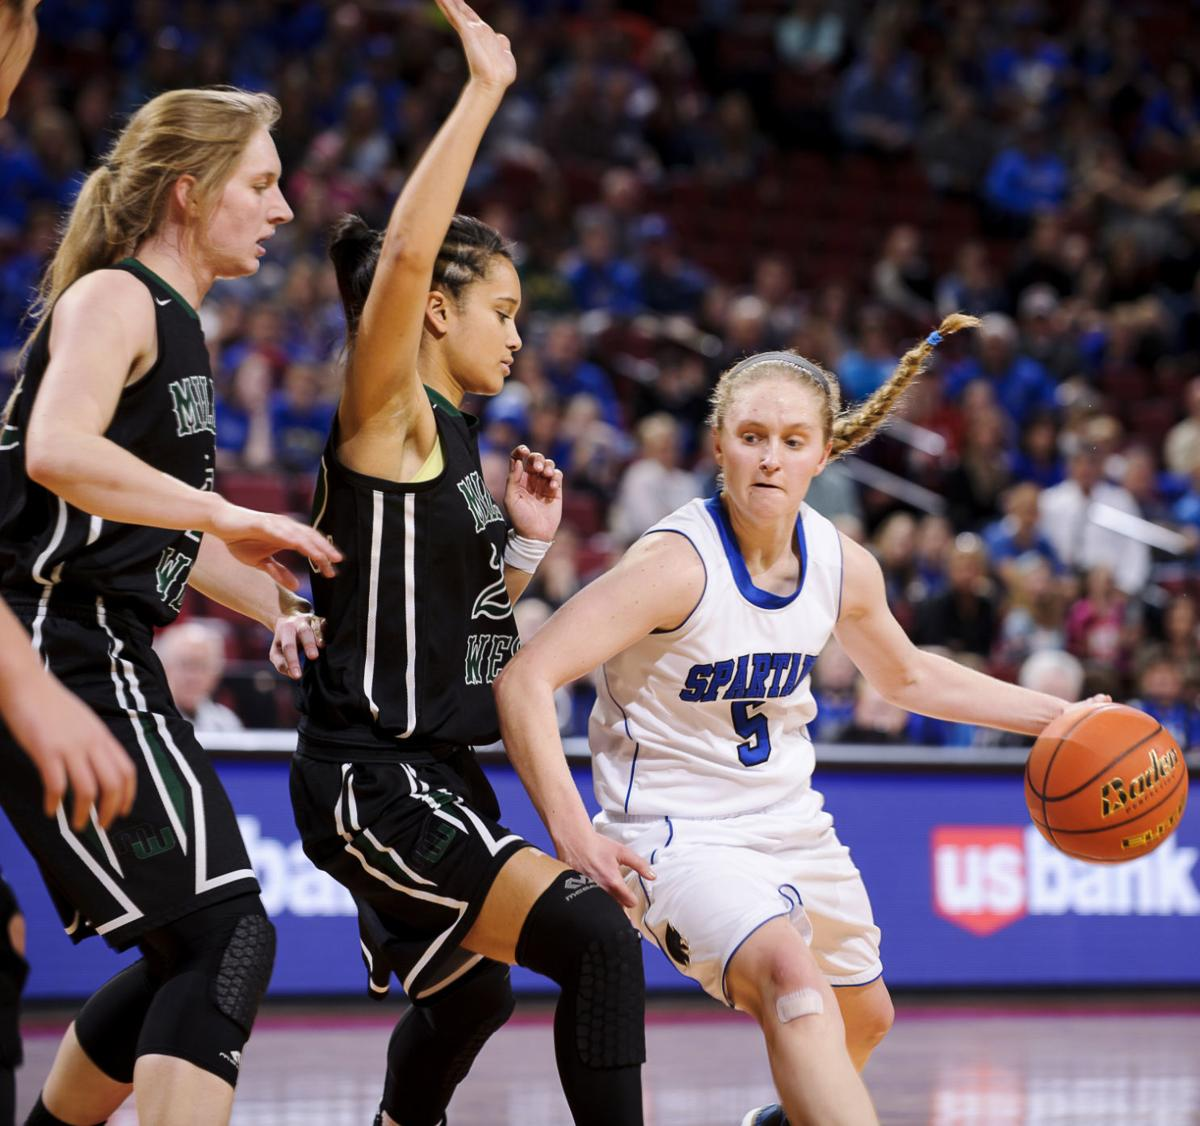 Class A: Lincoln East vs. Millard West, 3.5.2016